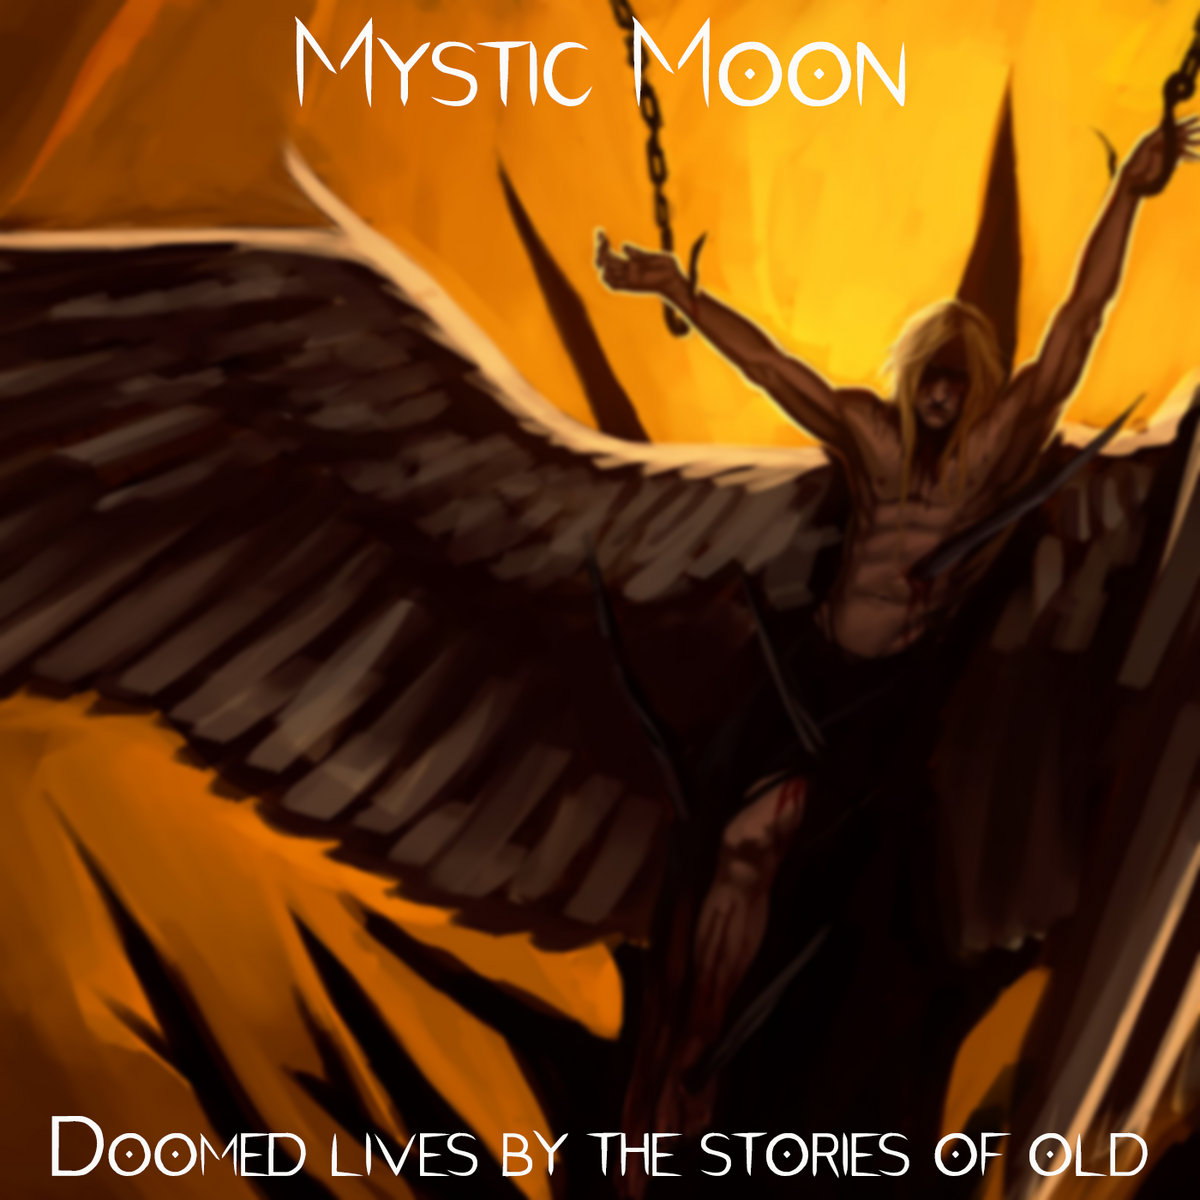 Doomed Lives by the Stories of Old | Mystic Moon